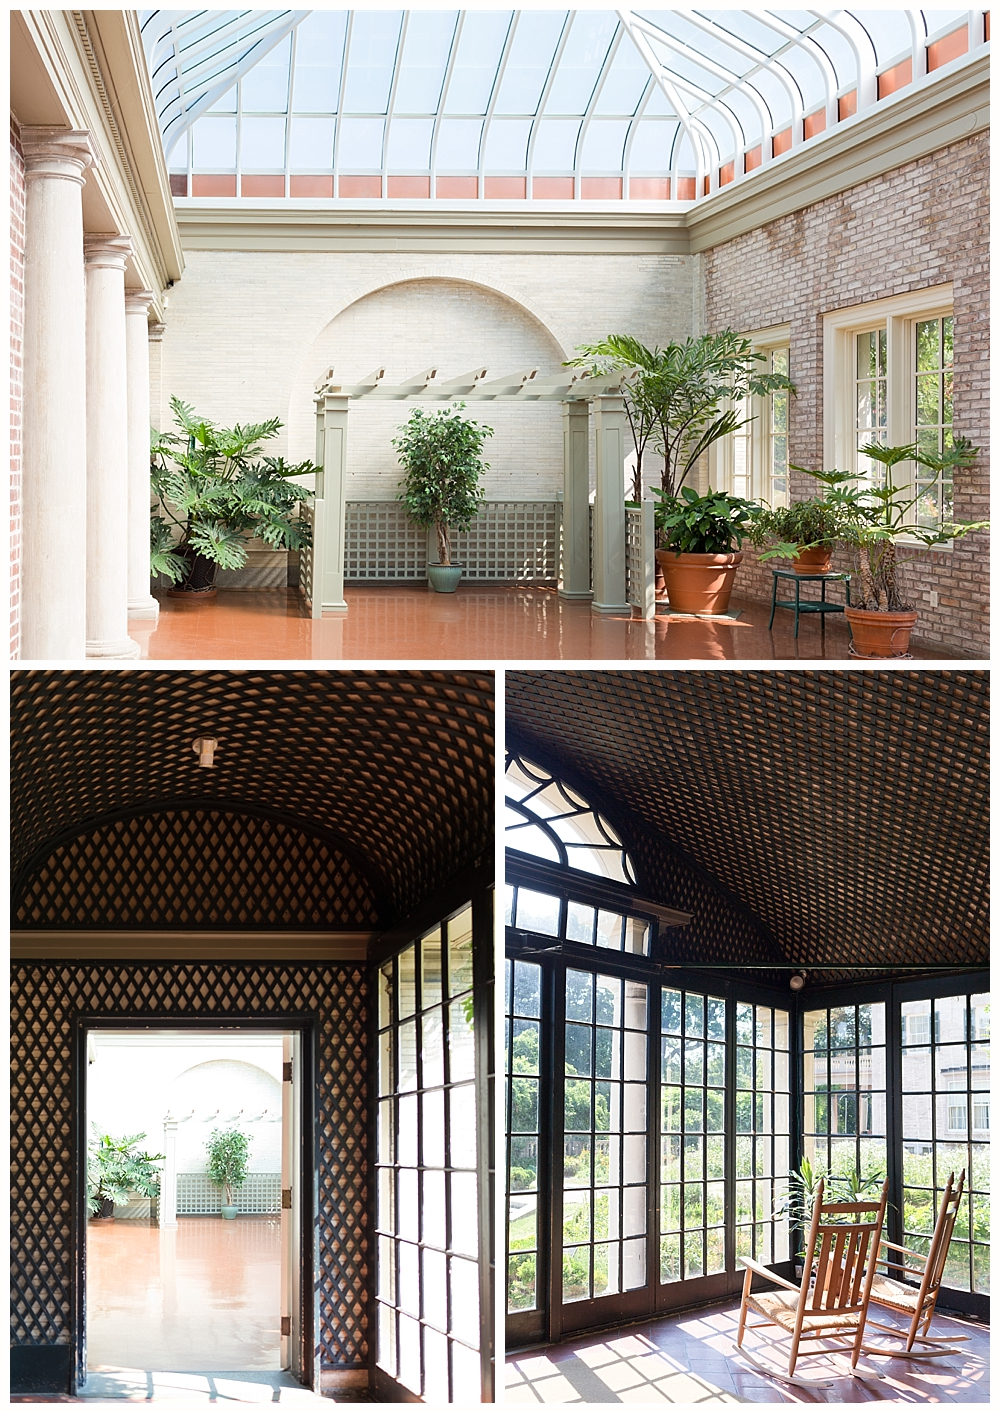 Palm House and Colonnade at George Eastman mansion and museum